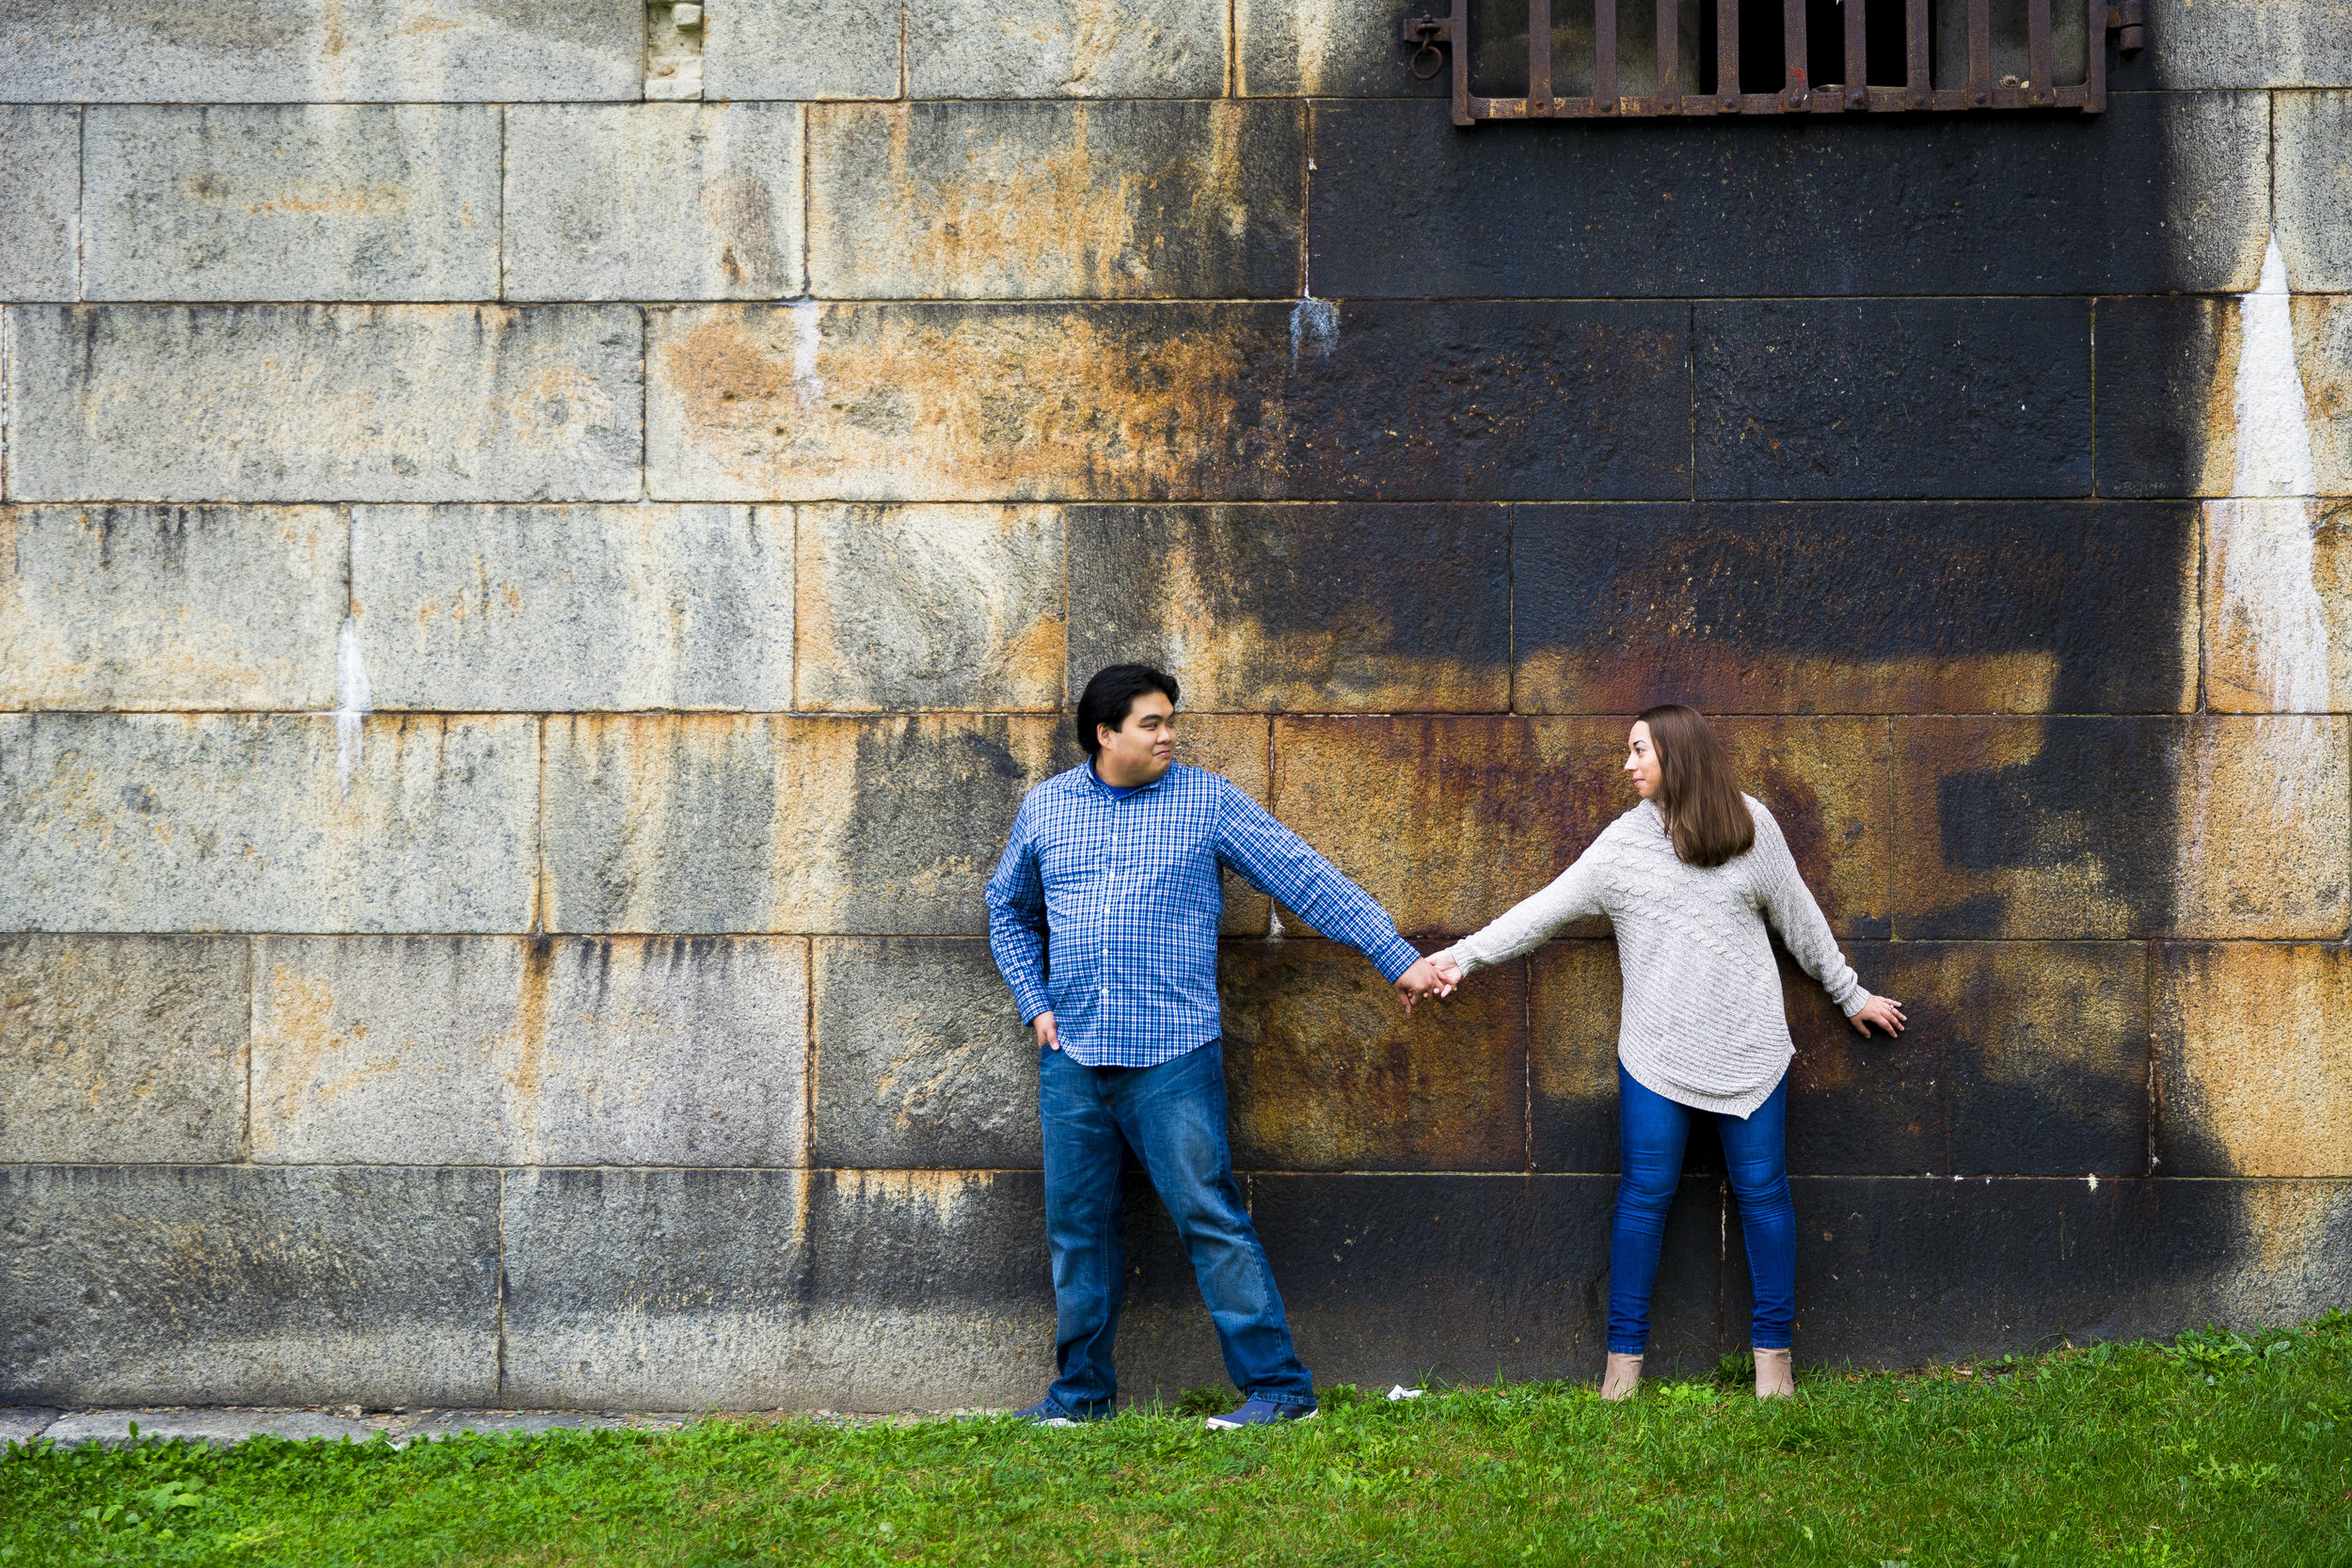 8C2A5026 Giovanni The Photographer Best Boston Wedding PhotographyErica and Richard's Engagement Session 10-29-17.jpg